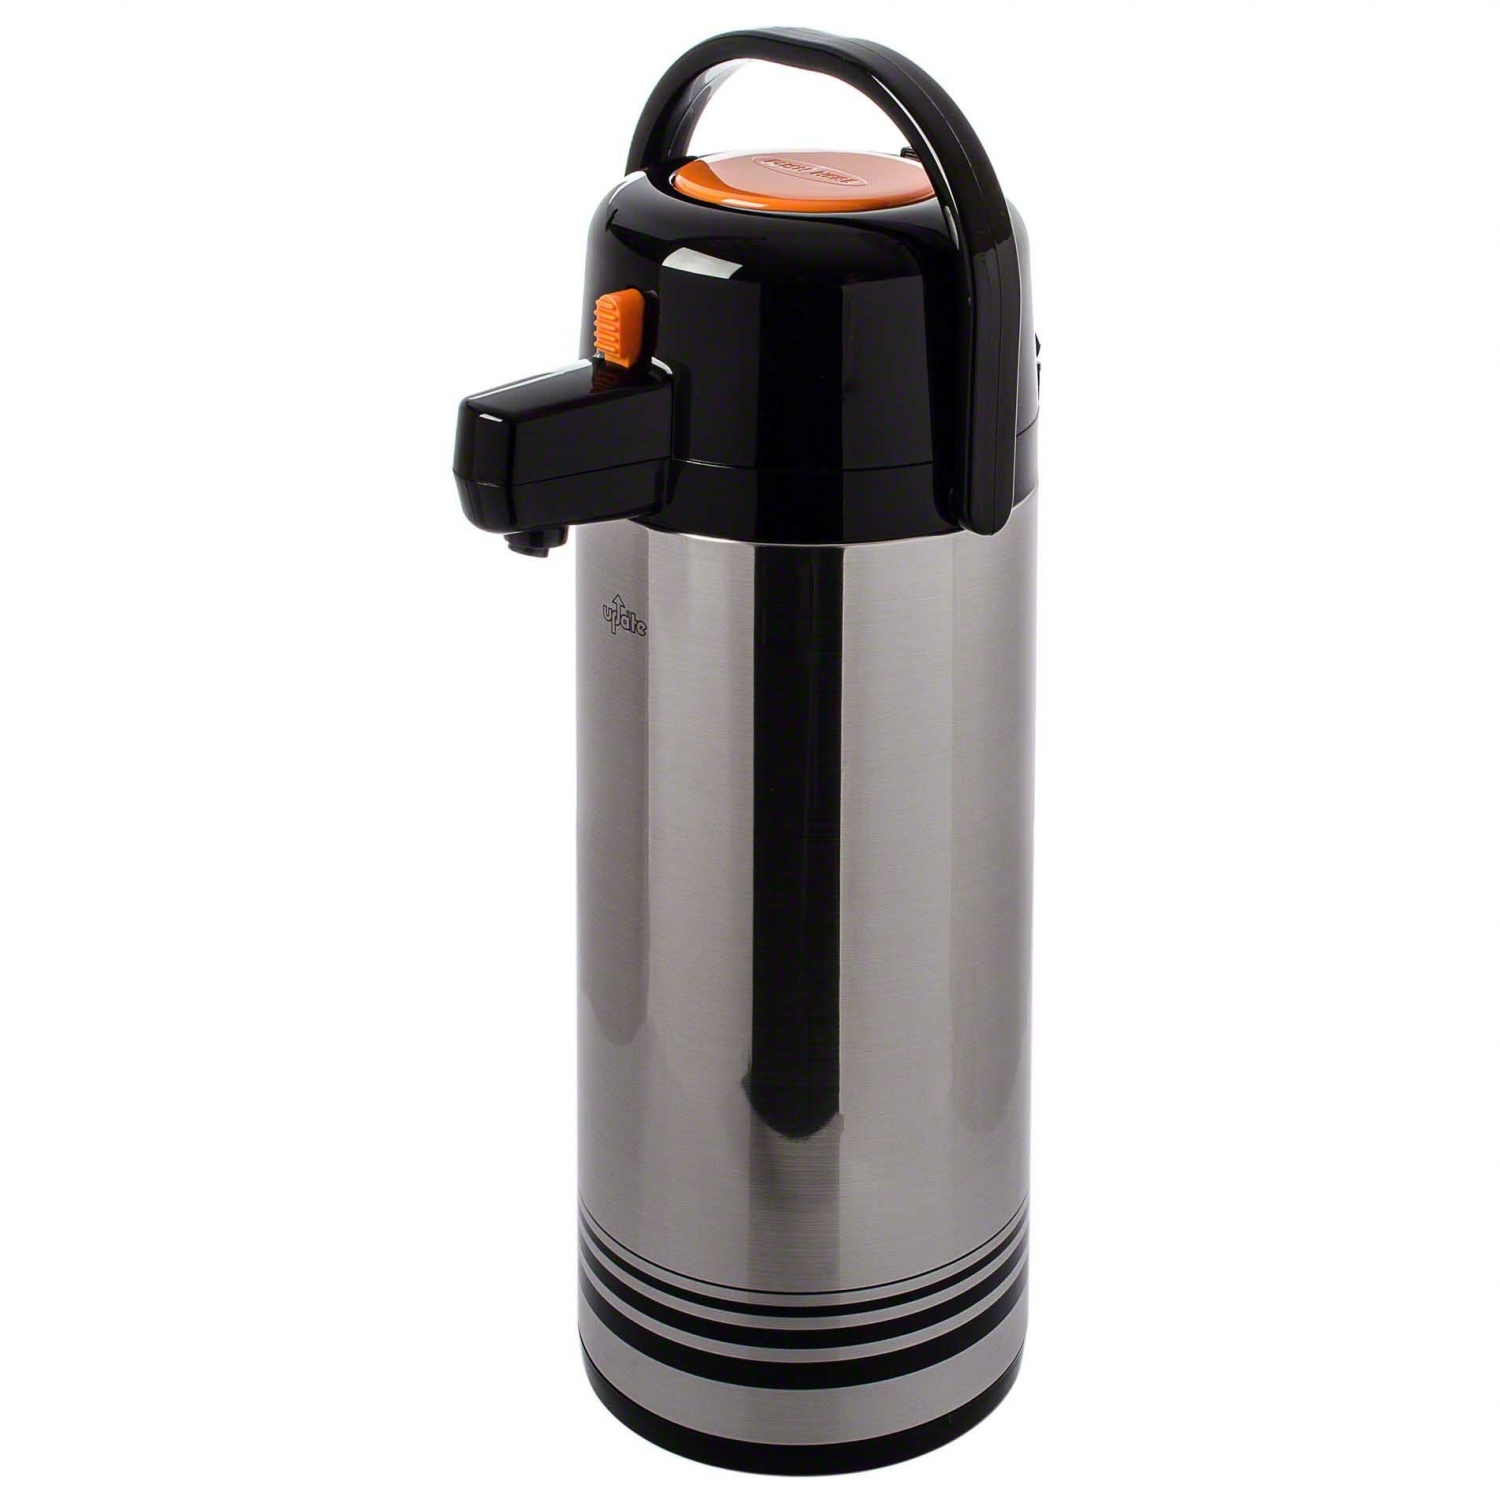 Update International NPD-25/OR/SF Brushed Stainless Steel 2.5 Liter Decaf Push Button Airpot